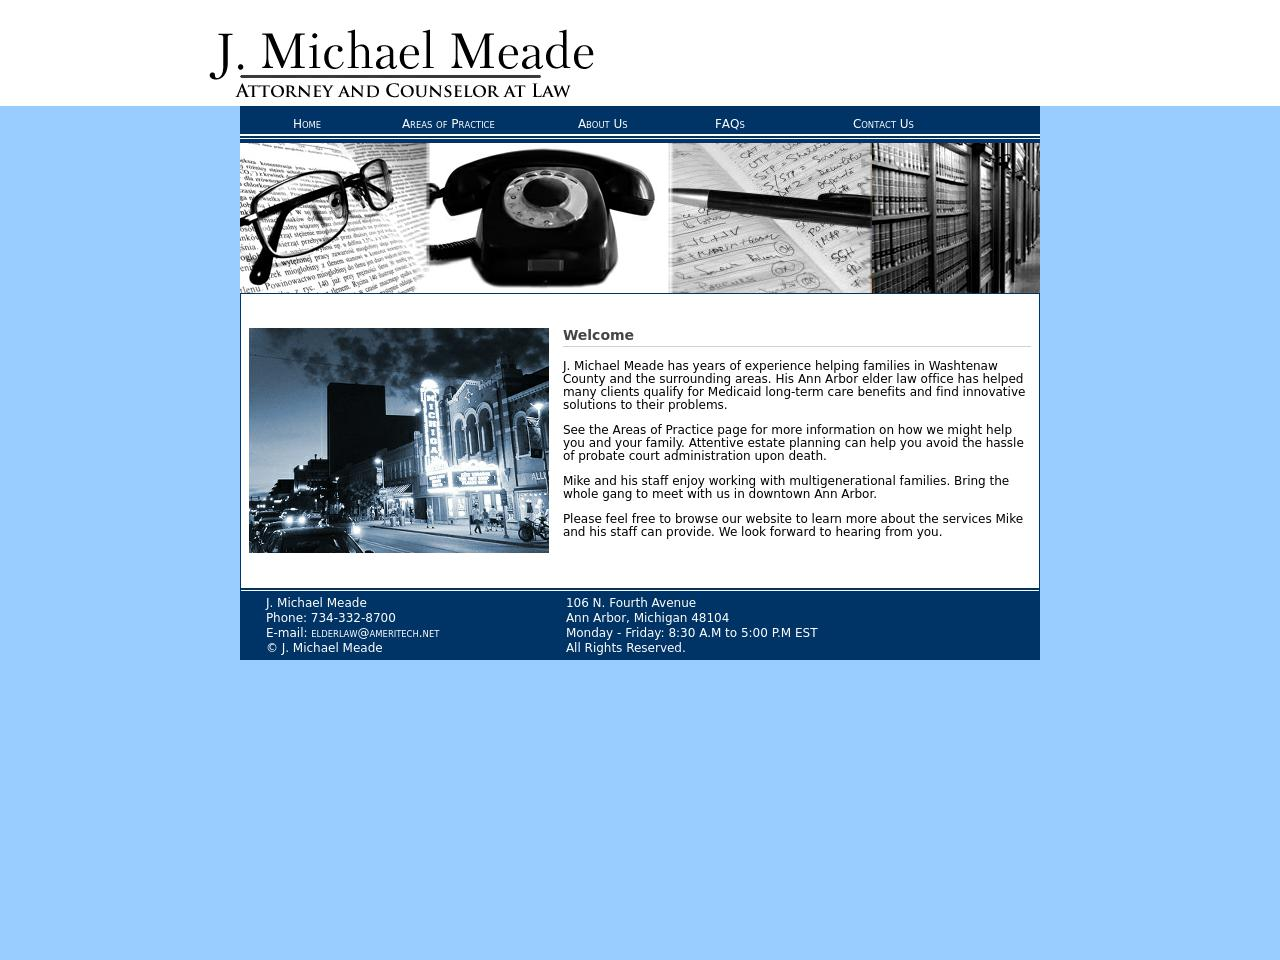 Meade, J Michael - Ann Arbor MI Lawyers